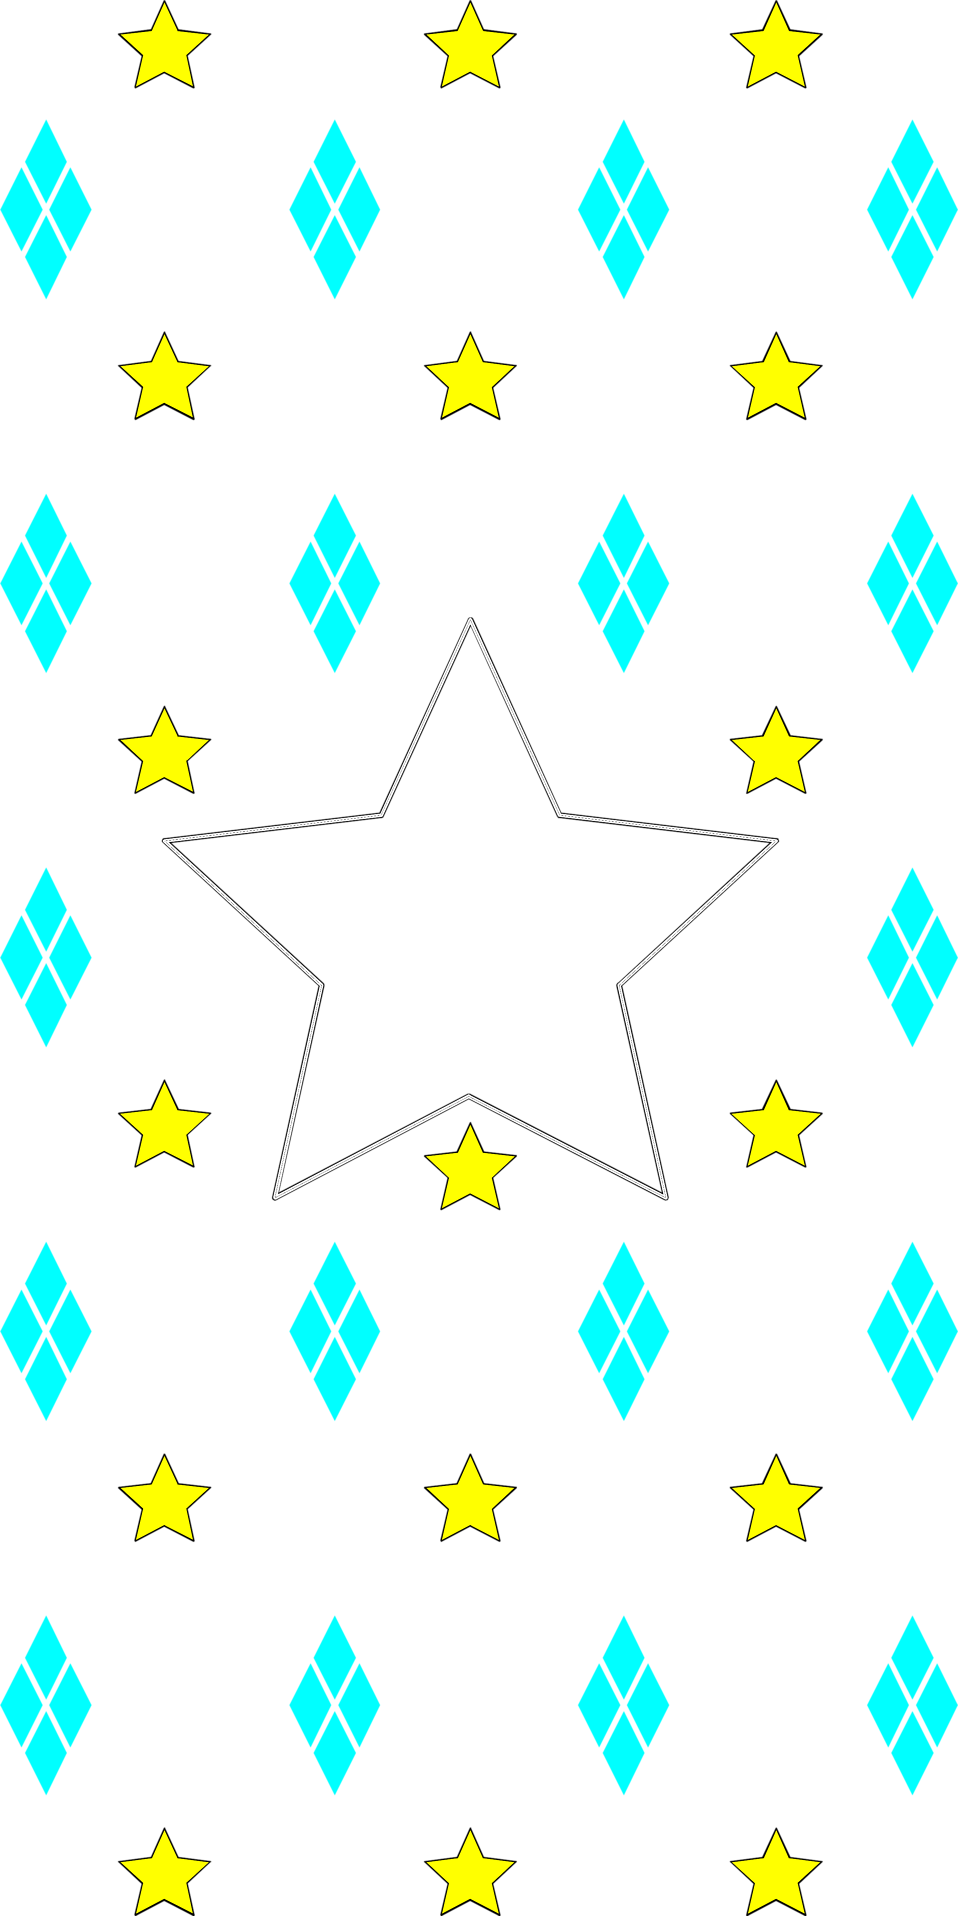 Free star background clipart freeuse Star | Free Stock Photo | Illustration of a yellow and blue star ... freeuse